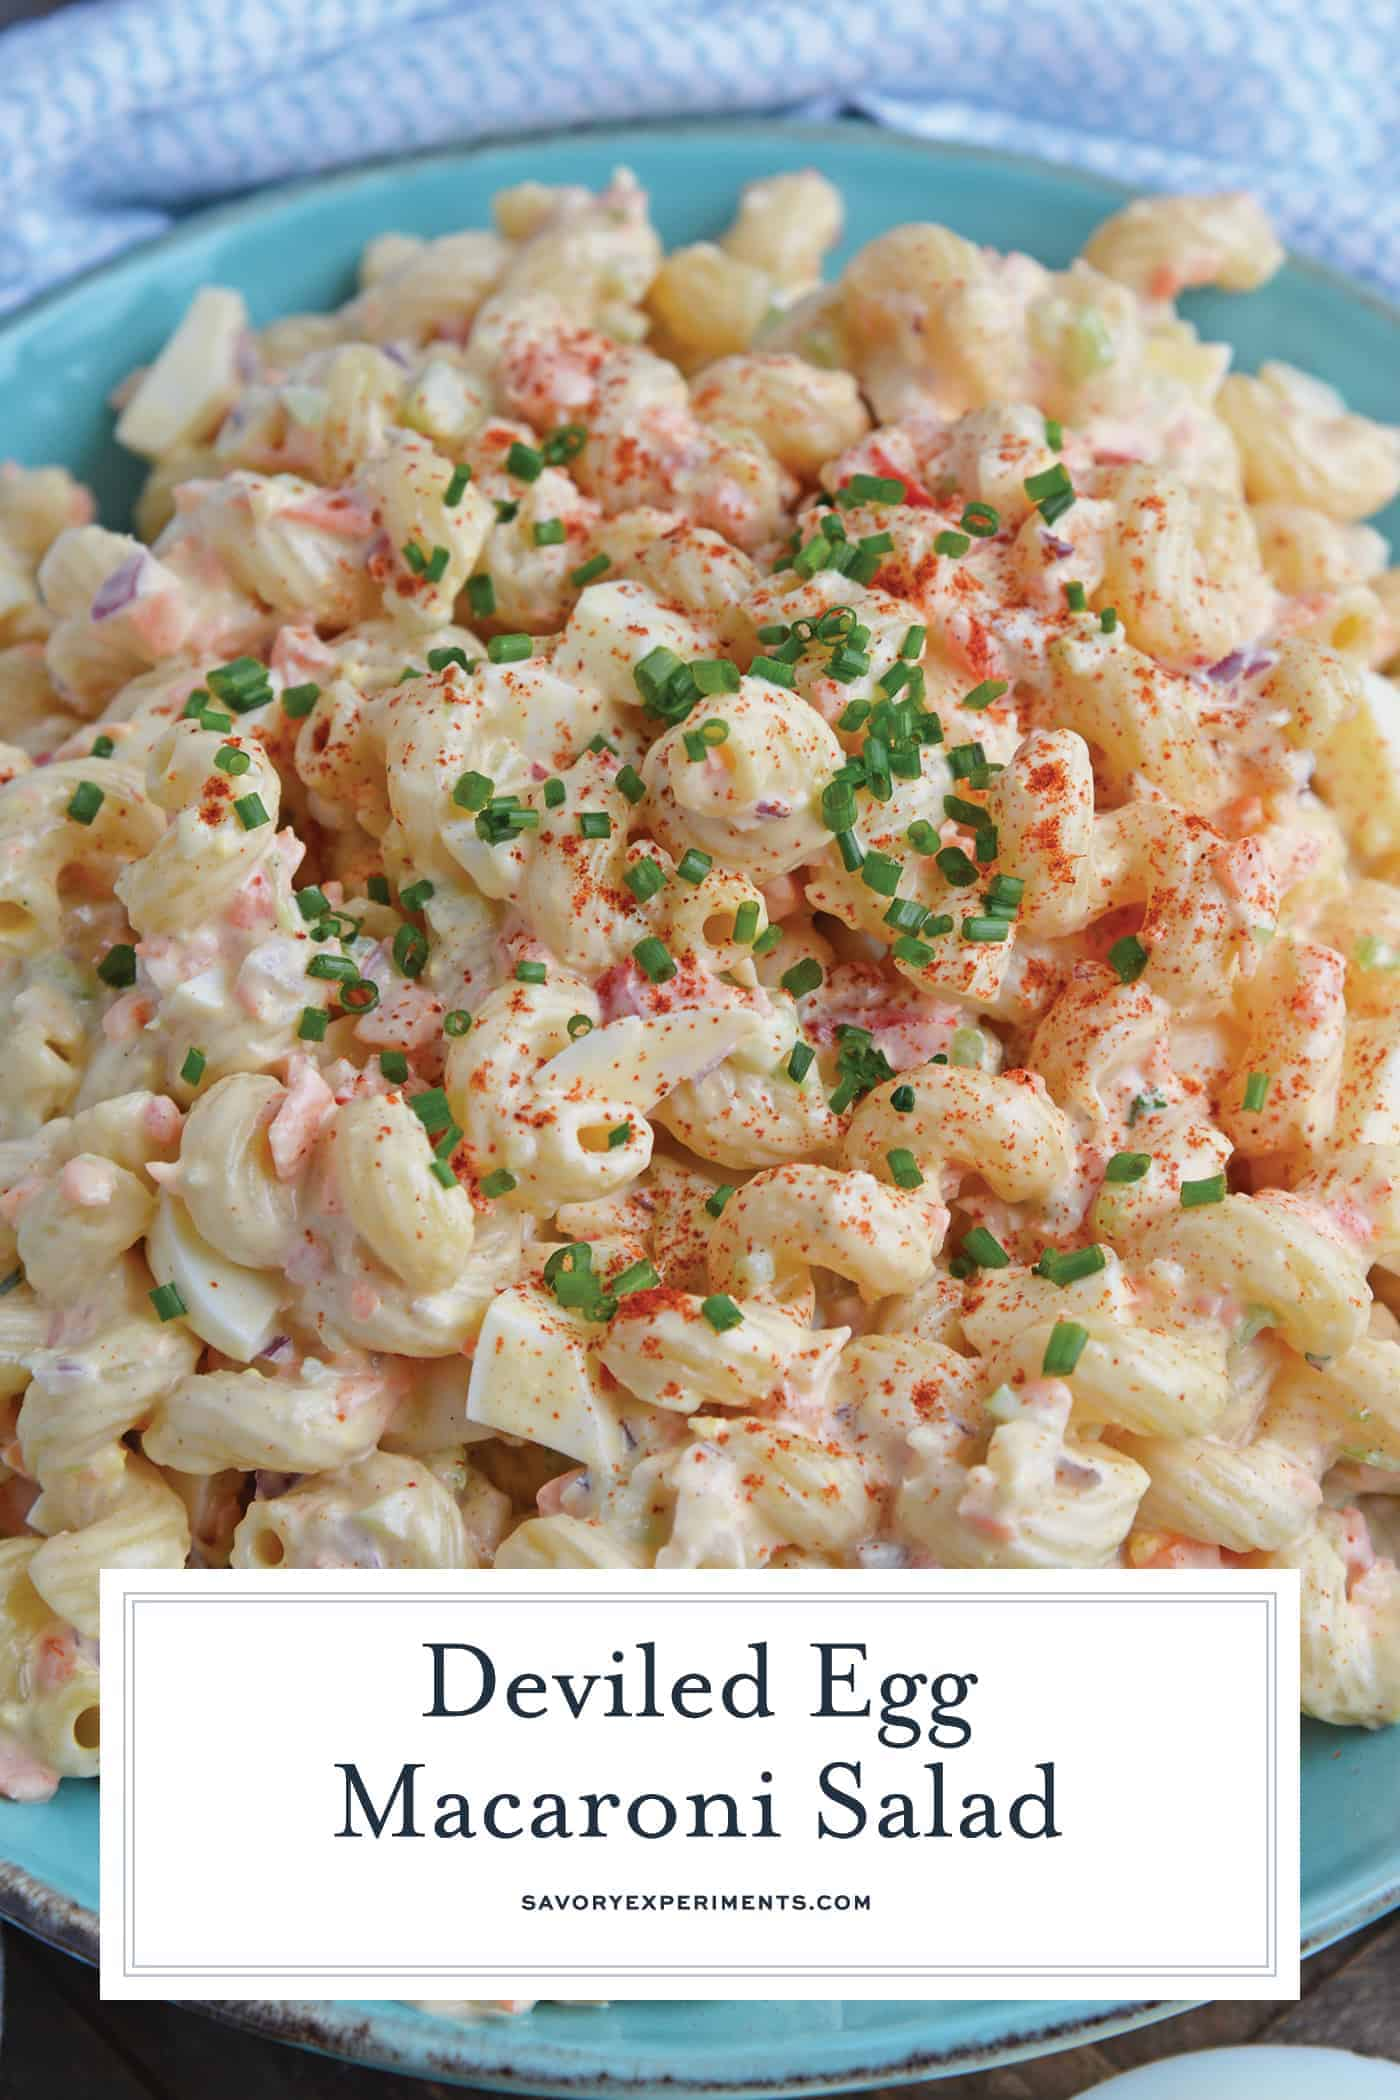 Macaroni salad with chives for Pinterest